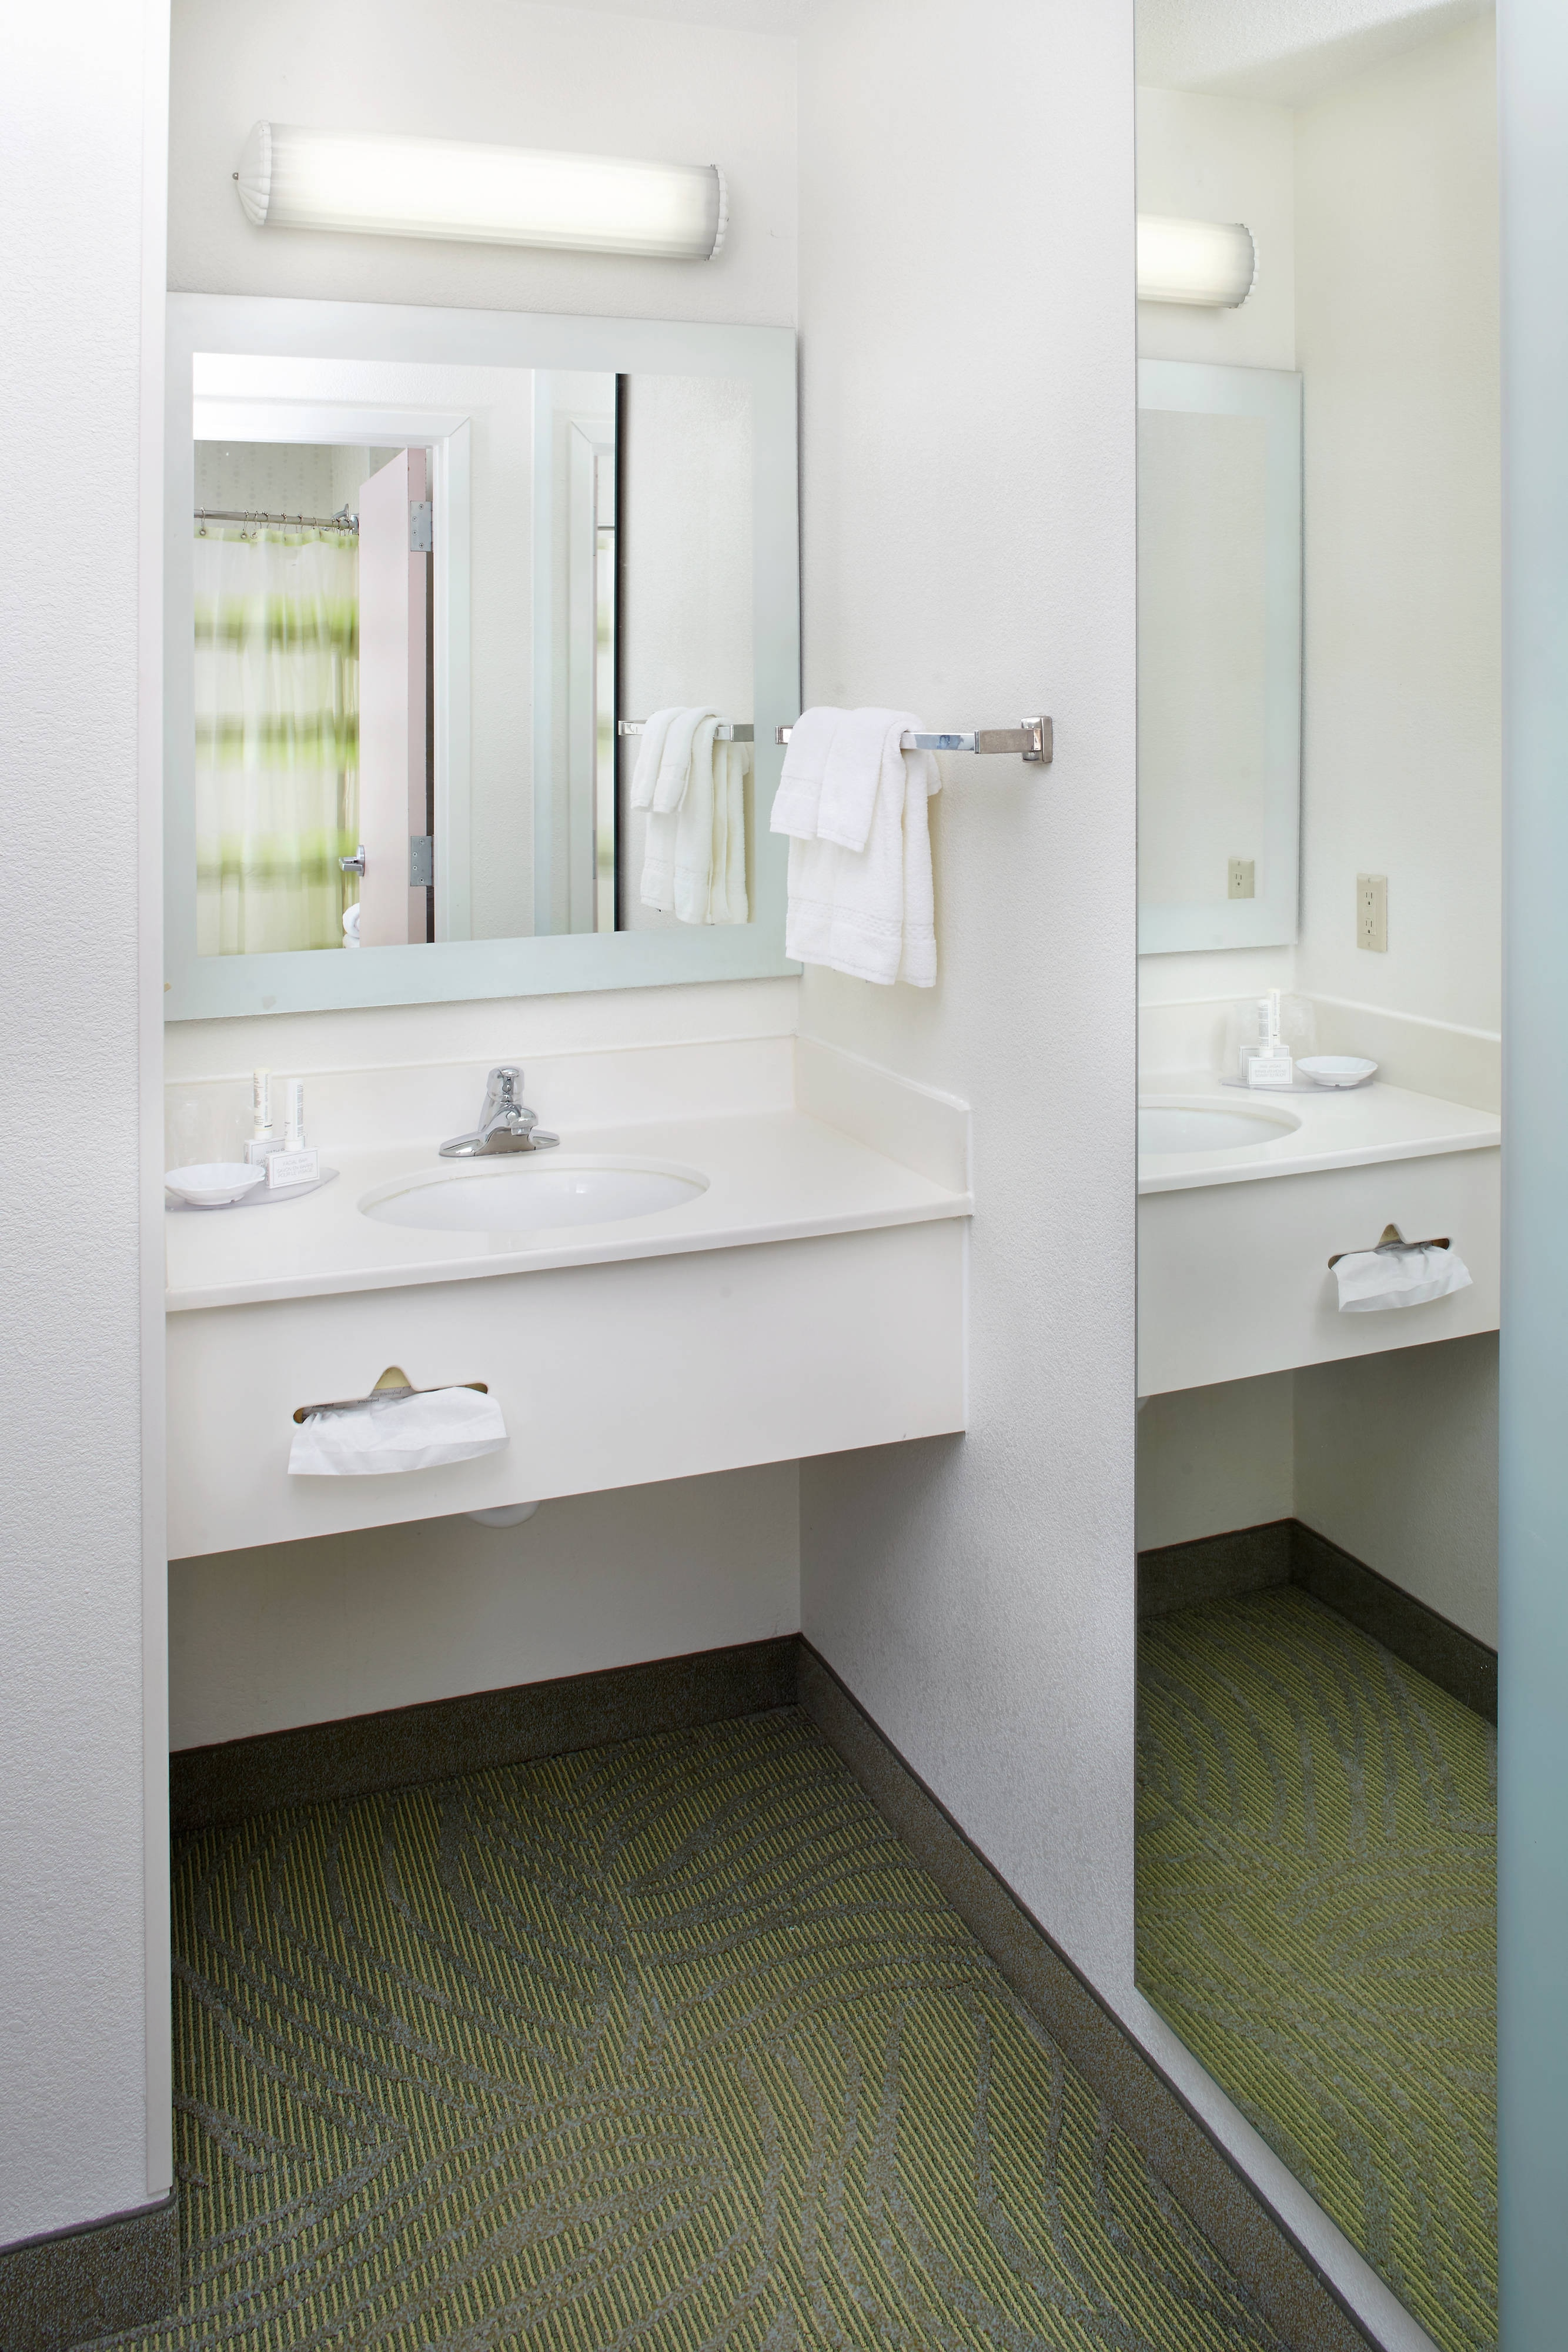 springhill suites guest bathroom